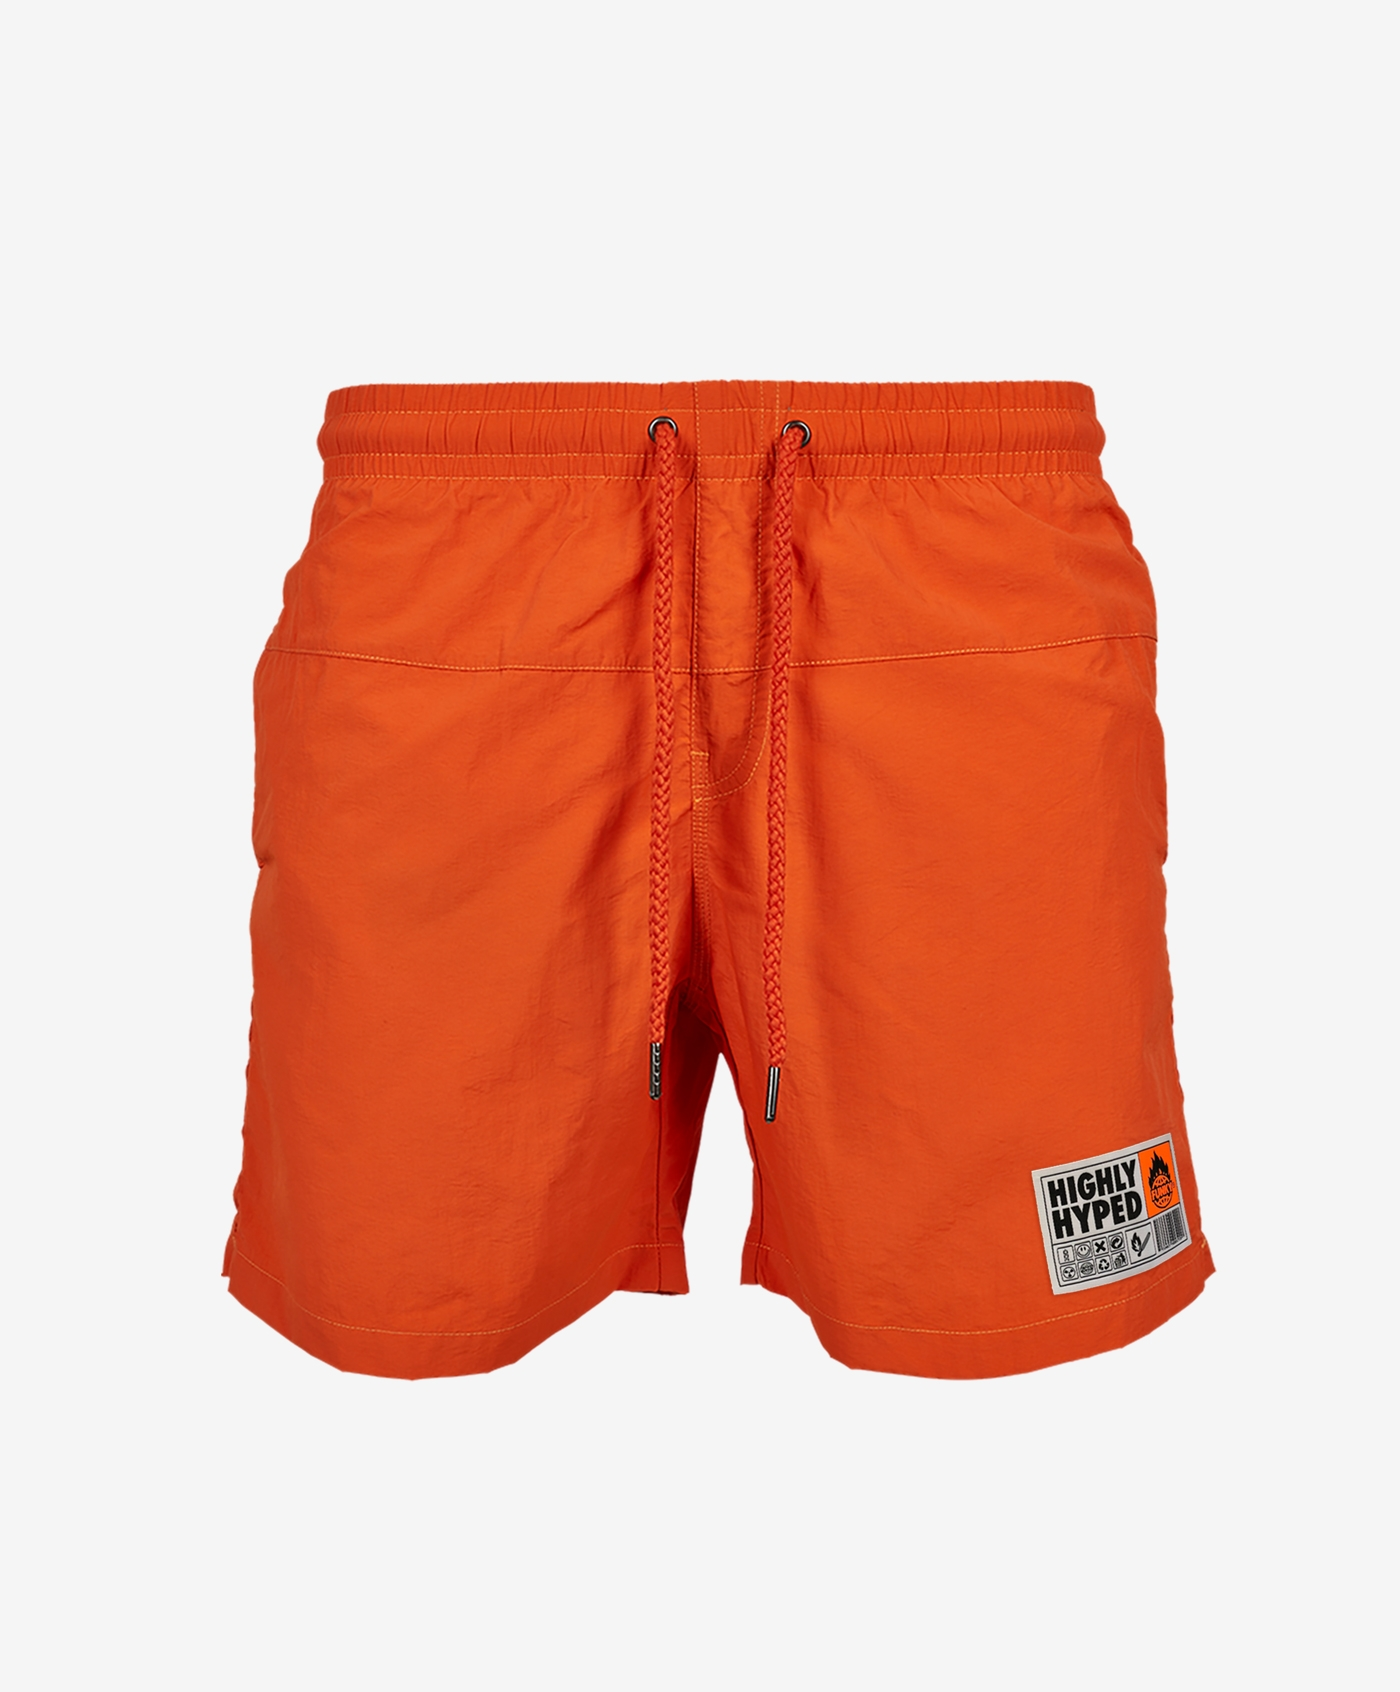 funky-hype-shorts-orange-front